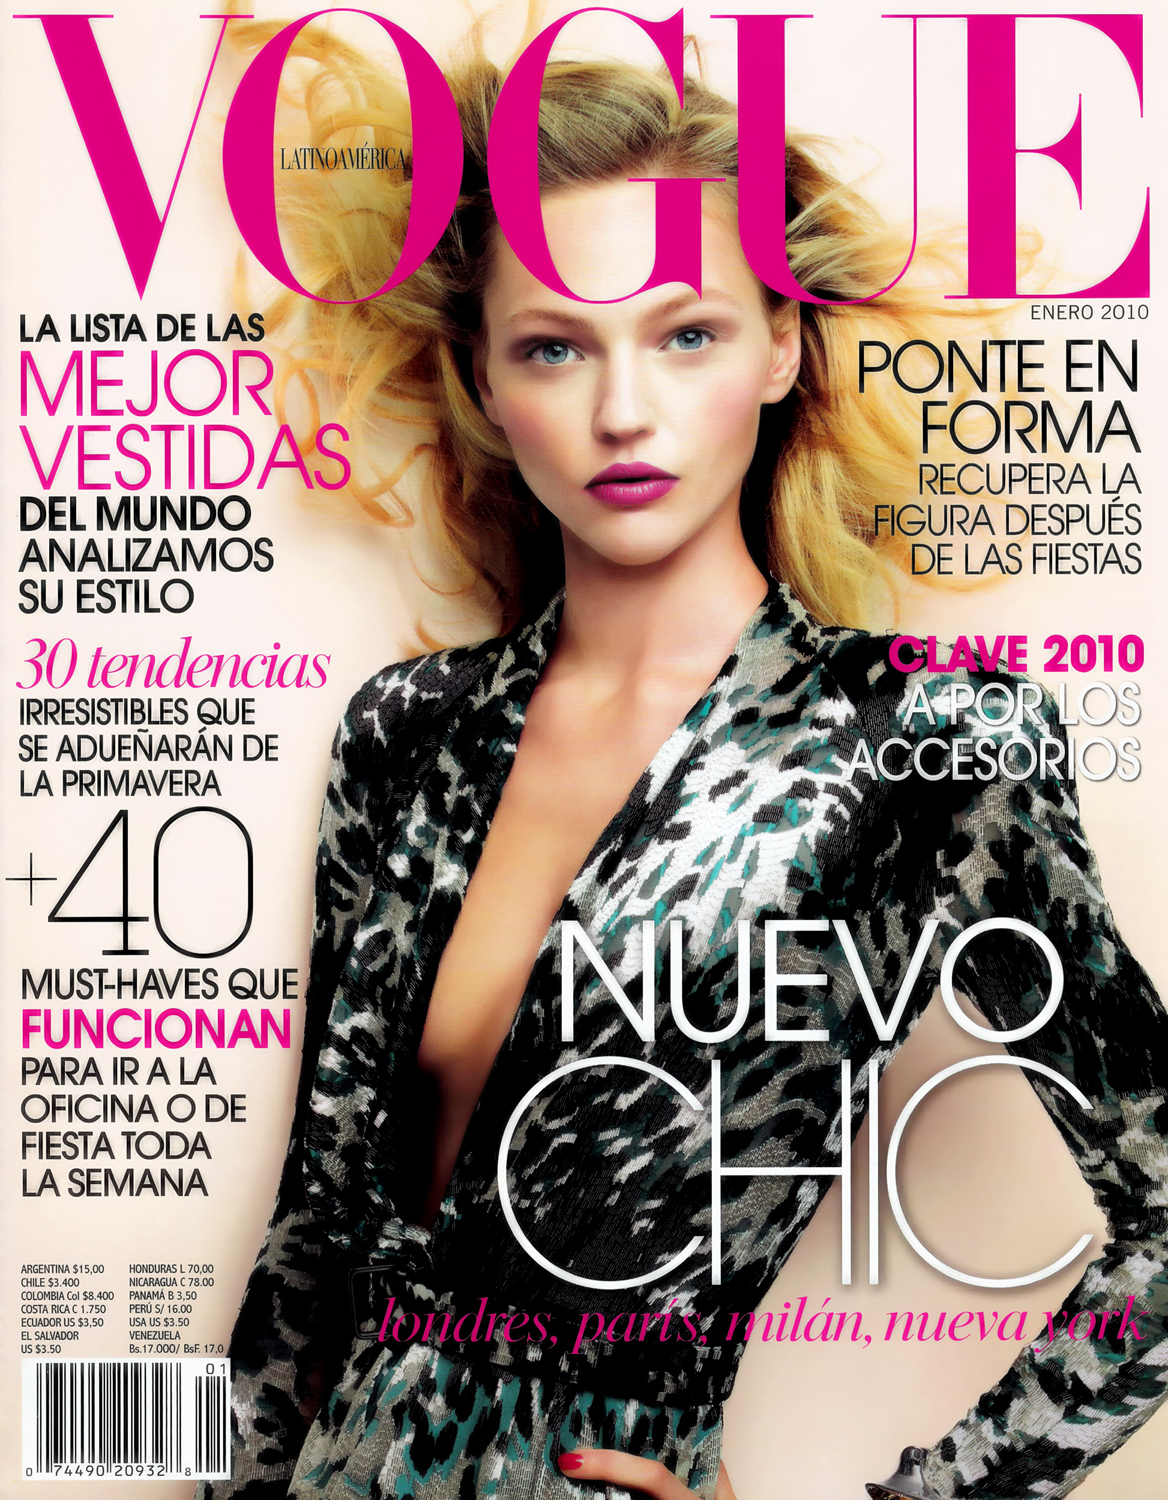 Fashion week Pivovarova sasha covers paris vogue october for woman